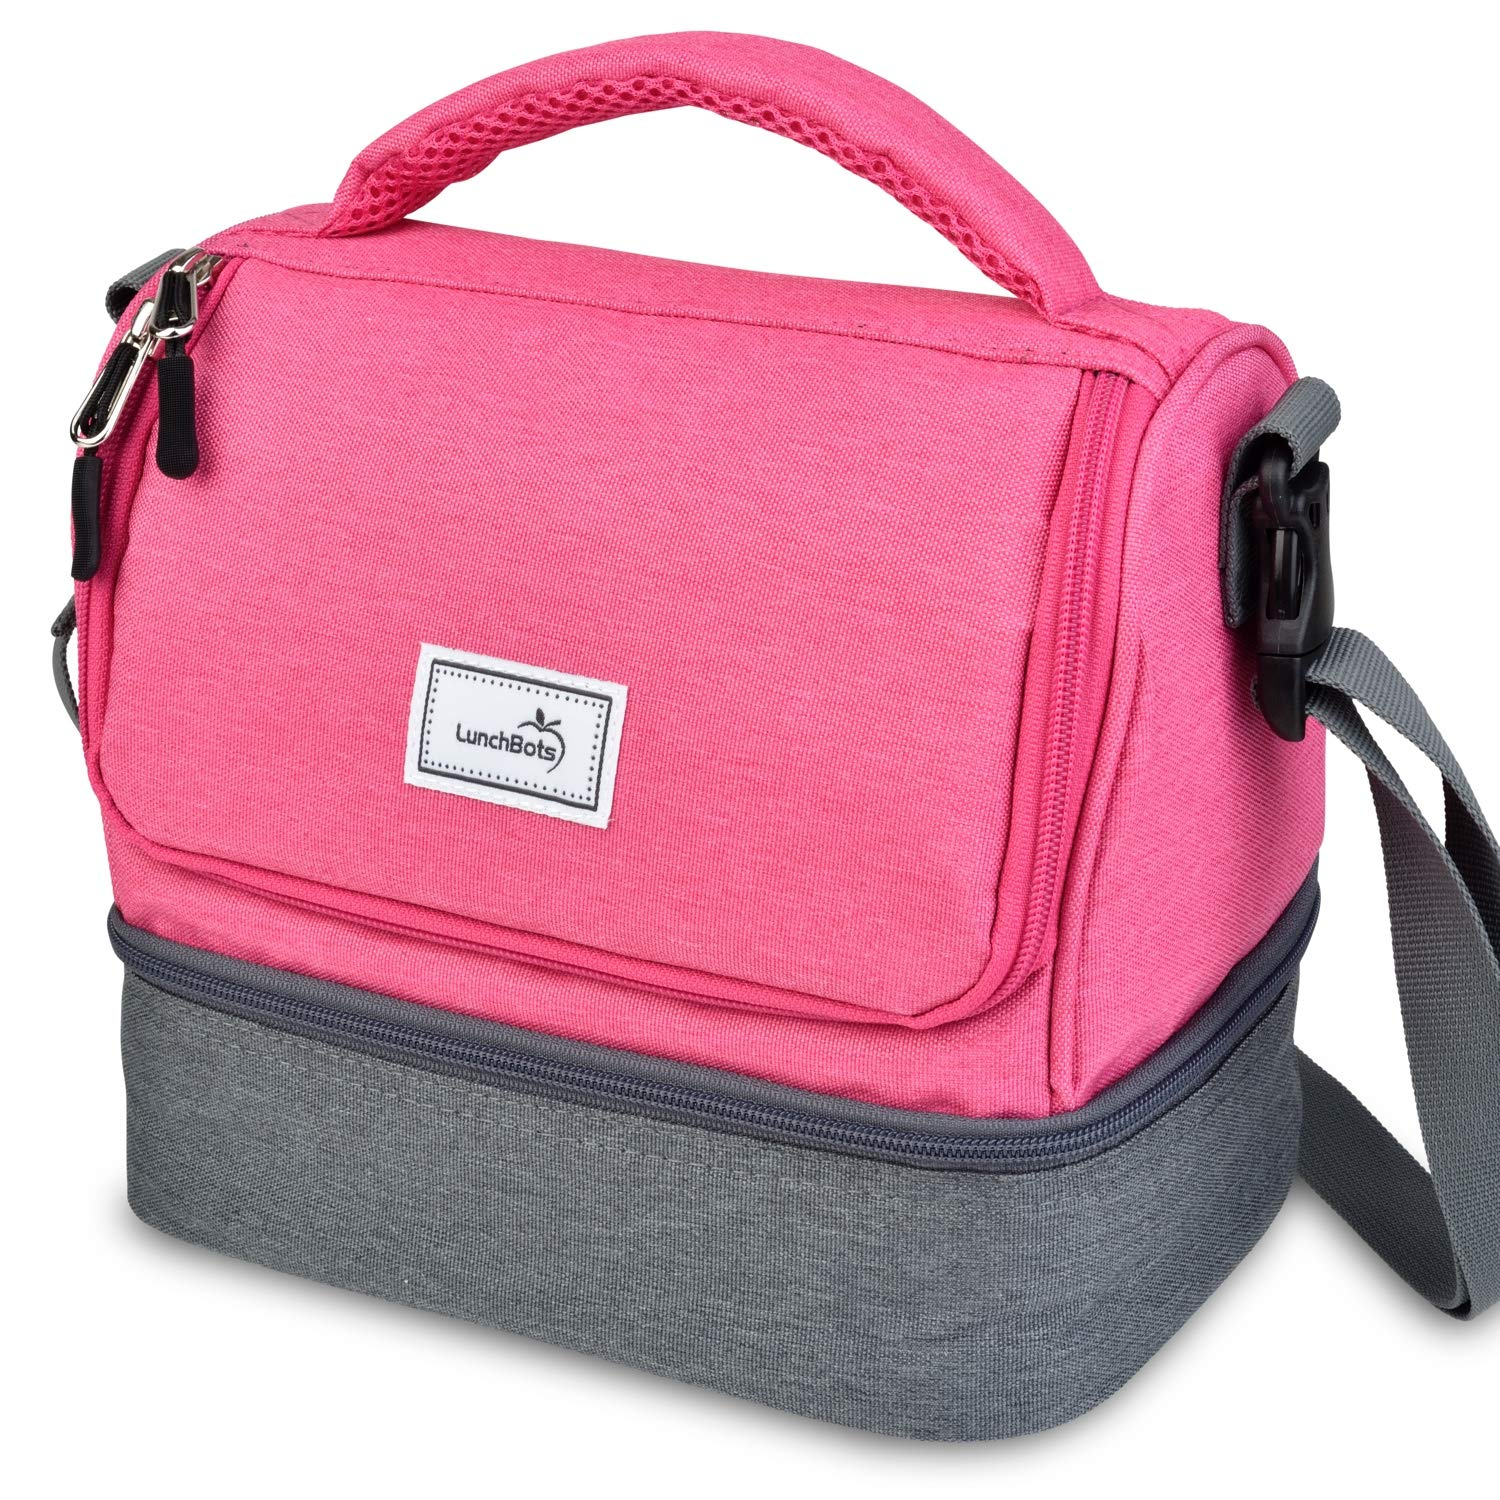 68628d019490 LunchBots Duplex Insulated Lunch Bag - Dual Section Design Fits LunchBots  Uno, Duo, Trio, Quad, Rounds, Bento Cinco Perfectly - Roomy Thermal Lunch  ...